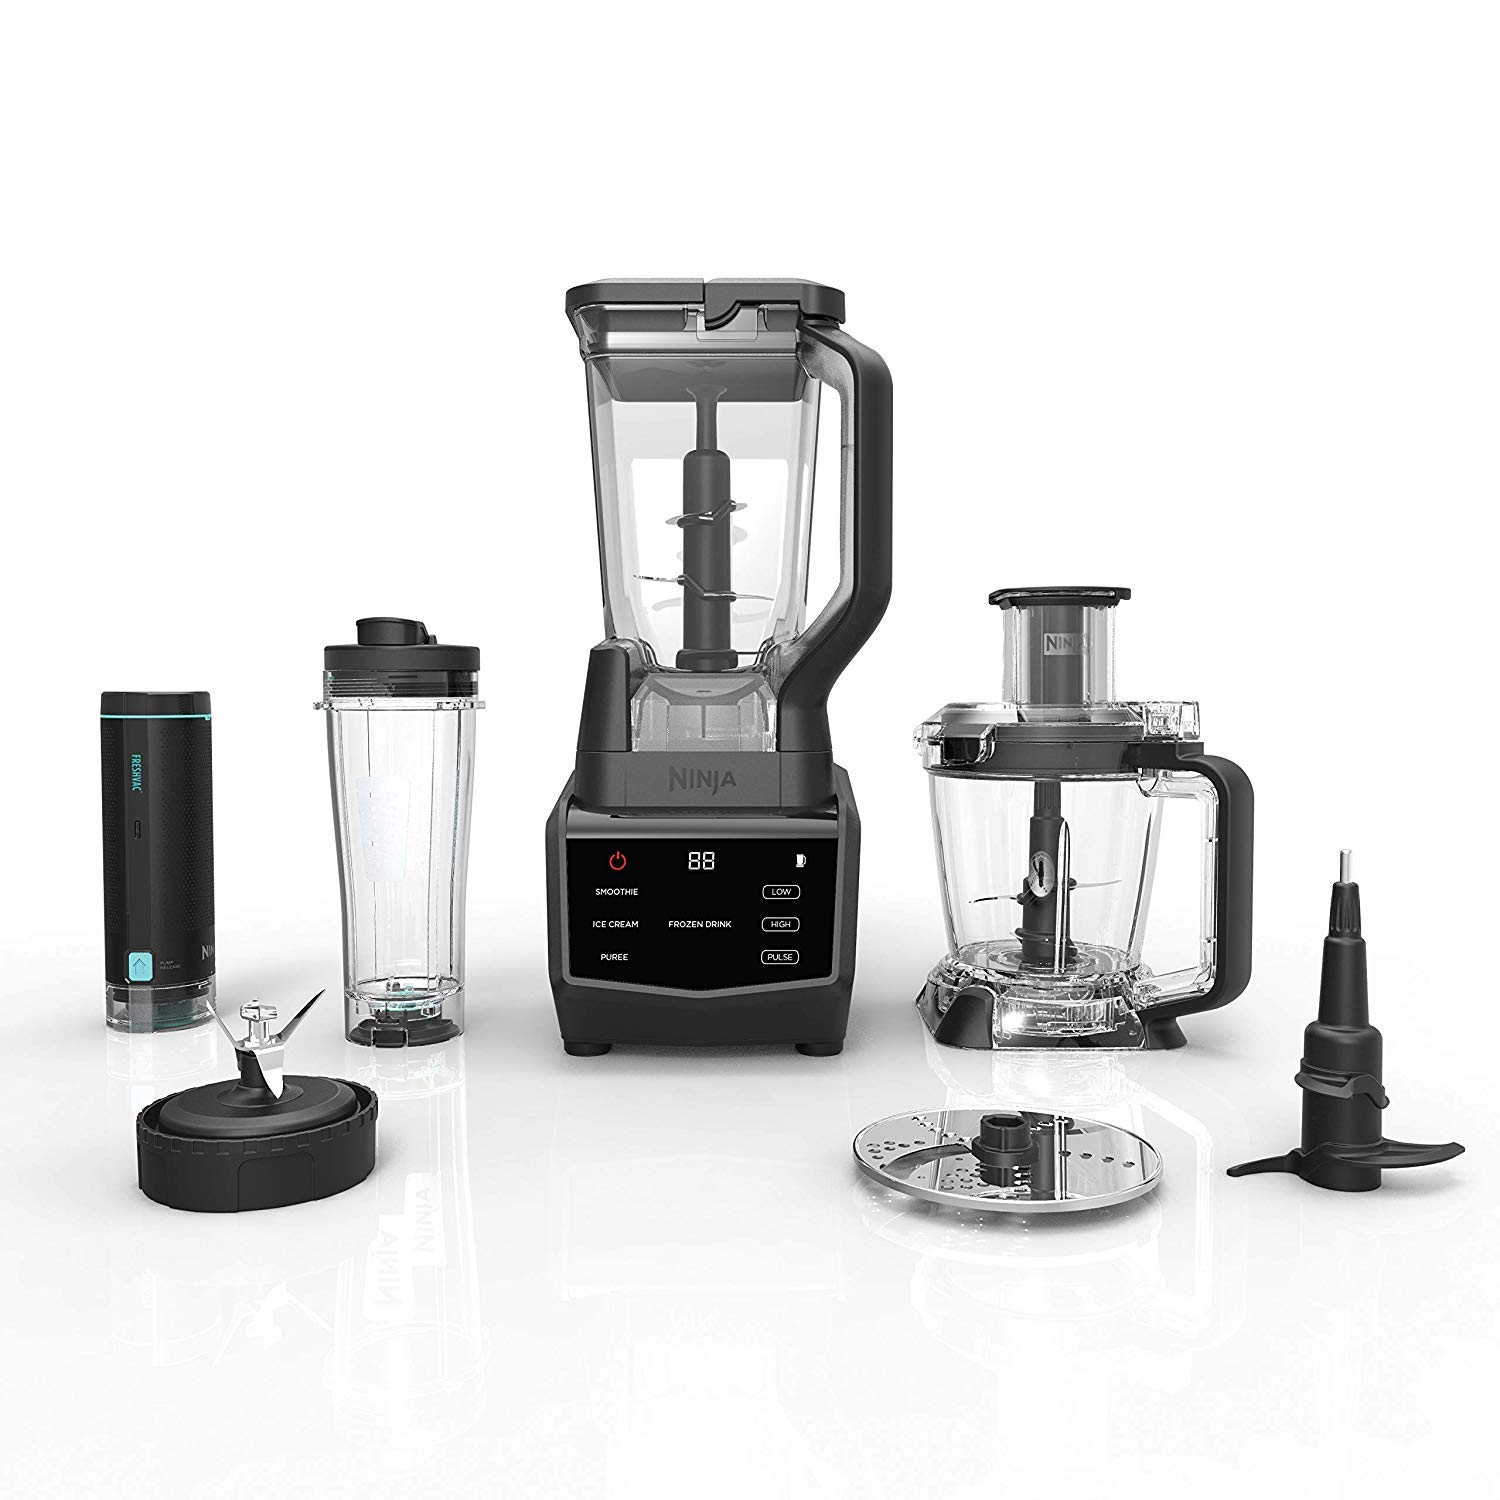 Smart Screen Blender and Food Processor with FreshVac Technology, 1400-Peak-Watt Base, 9 Auto-iQ Programs & Touchscreen Display for Ninja (CT672V) (Renewed)